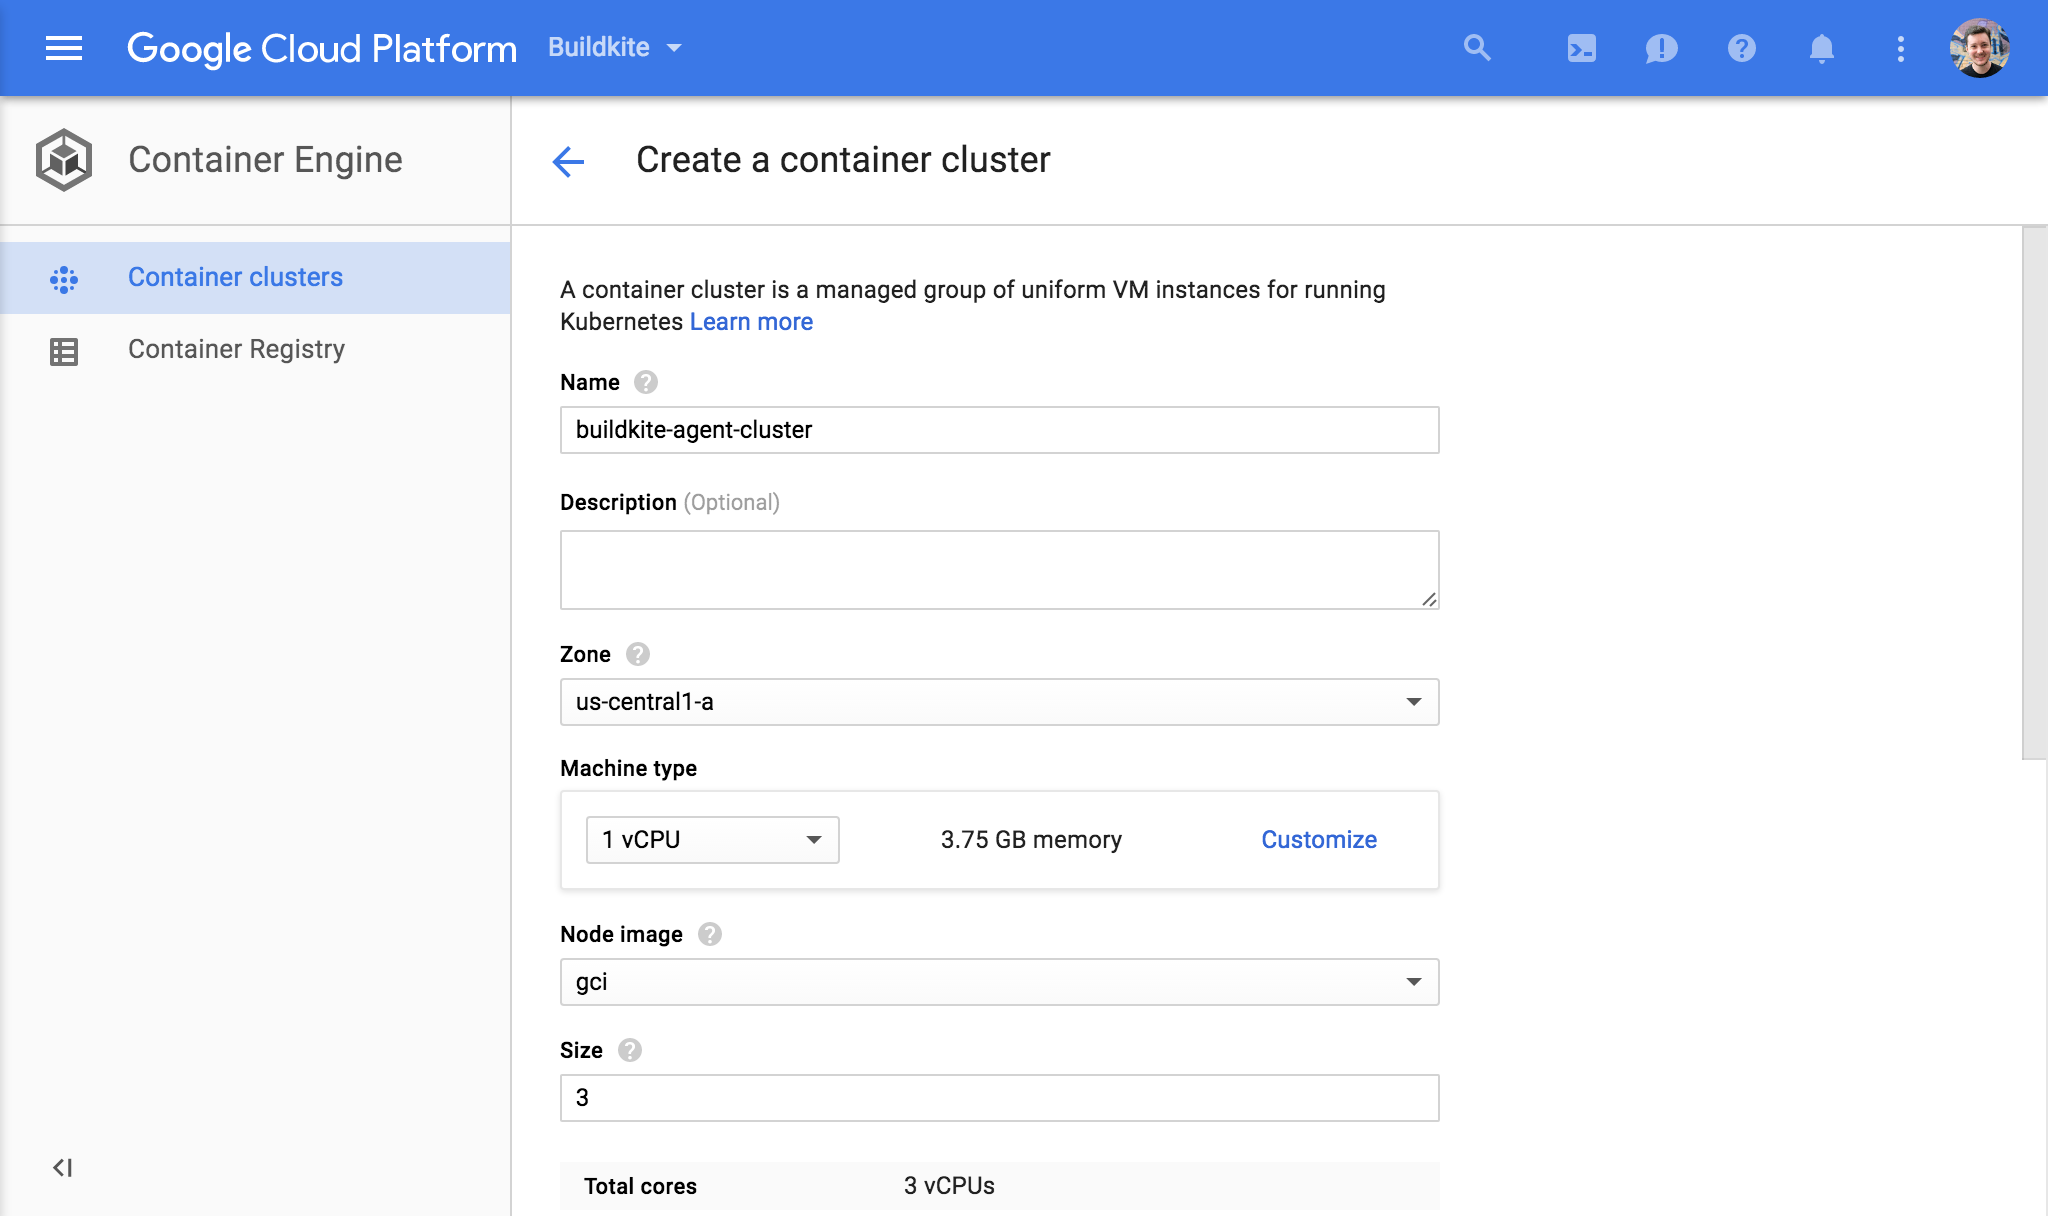 Screenshot of creating a Google Container Engine cluster via the Google Cloud Console